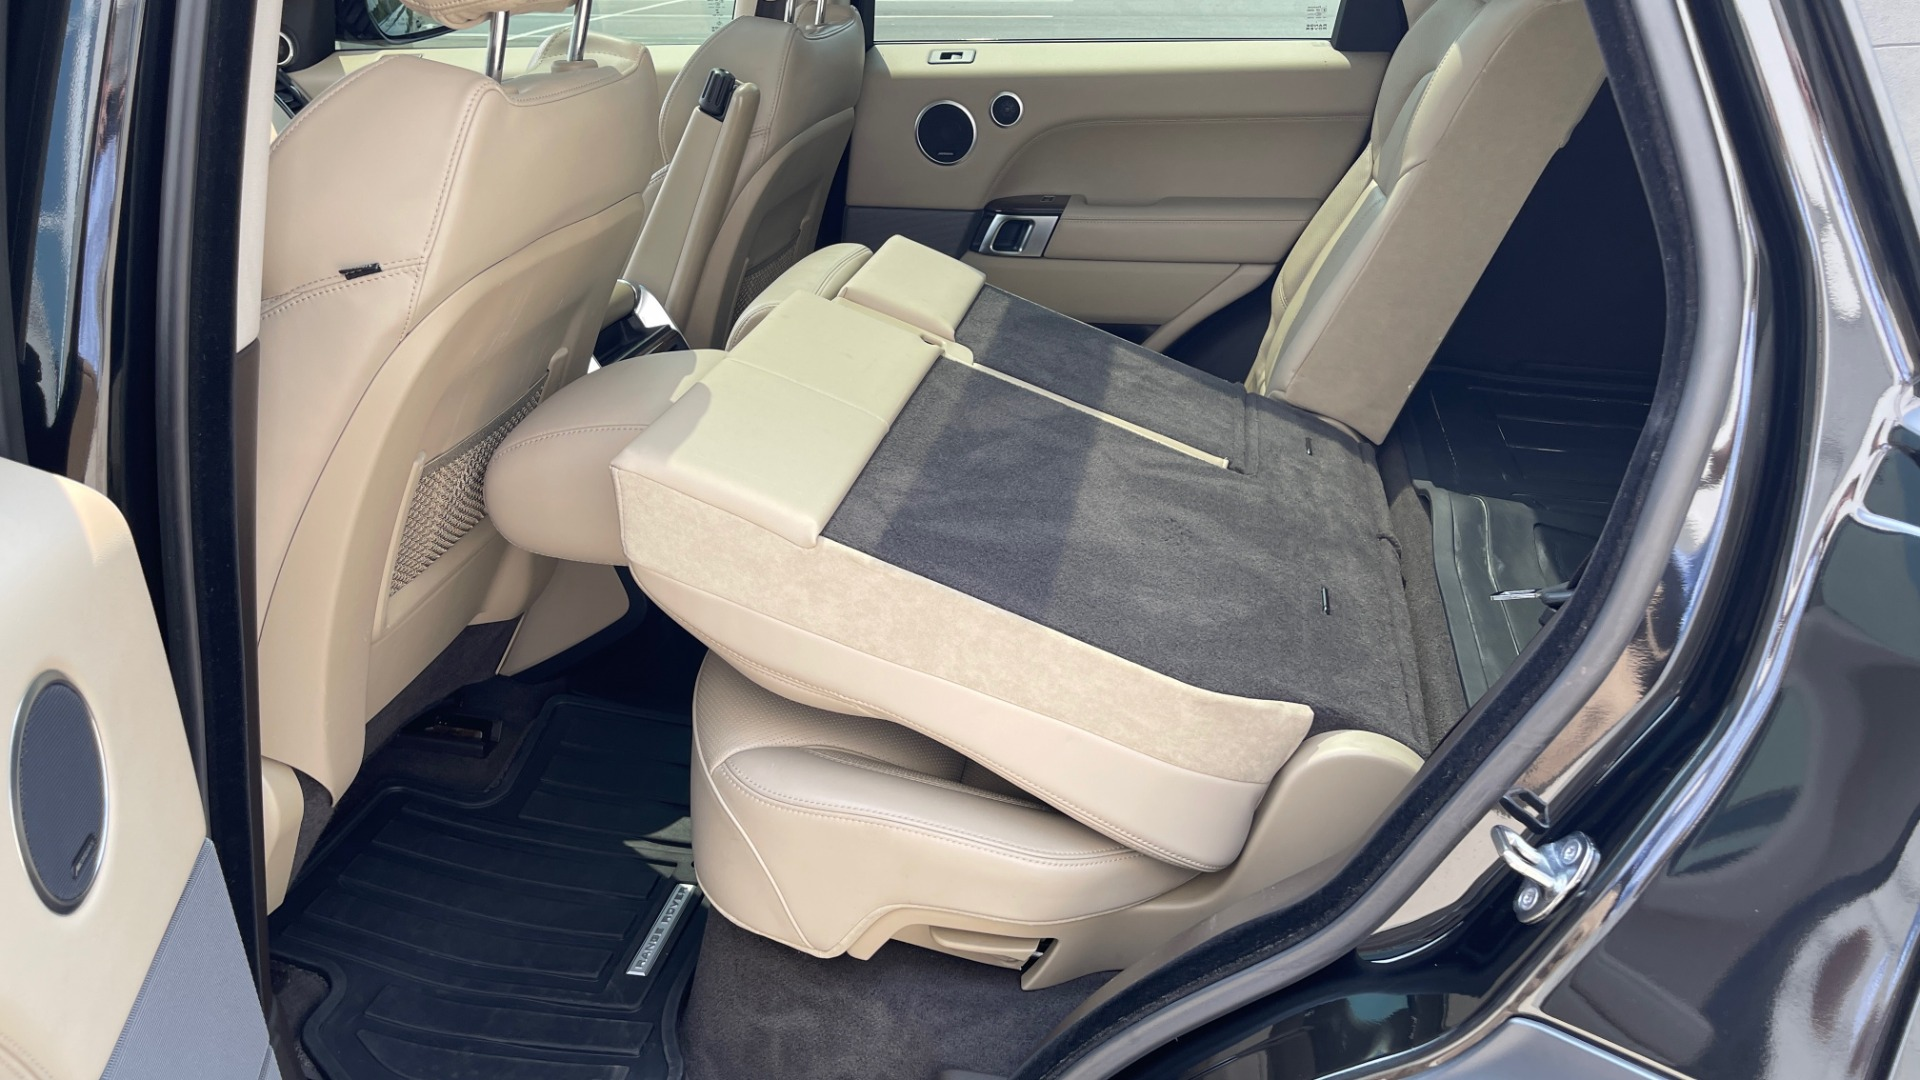 Used 2016 Land Rover RANGE ROVER SPORT V6 HSE / NAV / PANO-ROOF / MERIDIAN / CONSOLE COOLER / CAMERAS for sale $40,995 at Formula Imports in Charlotte NC 28227 62